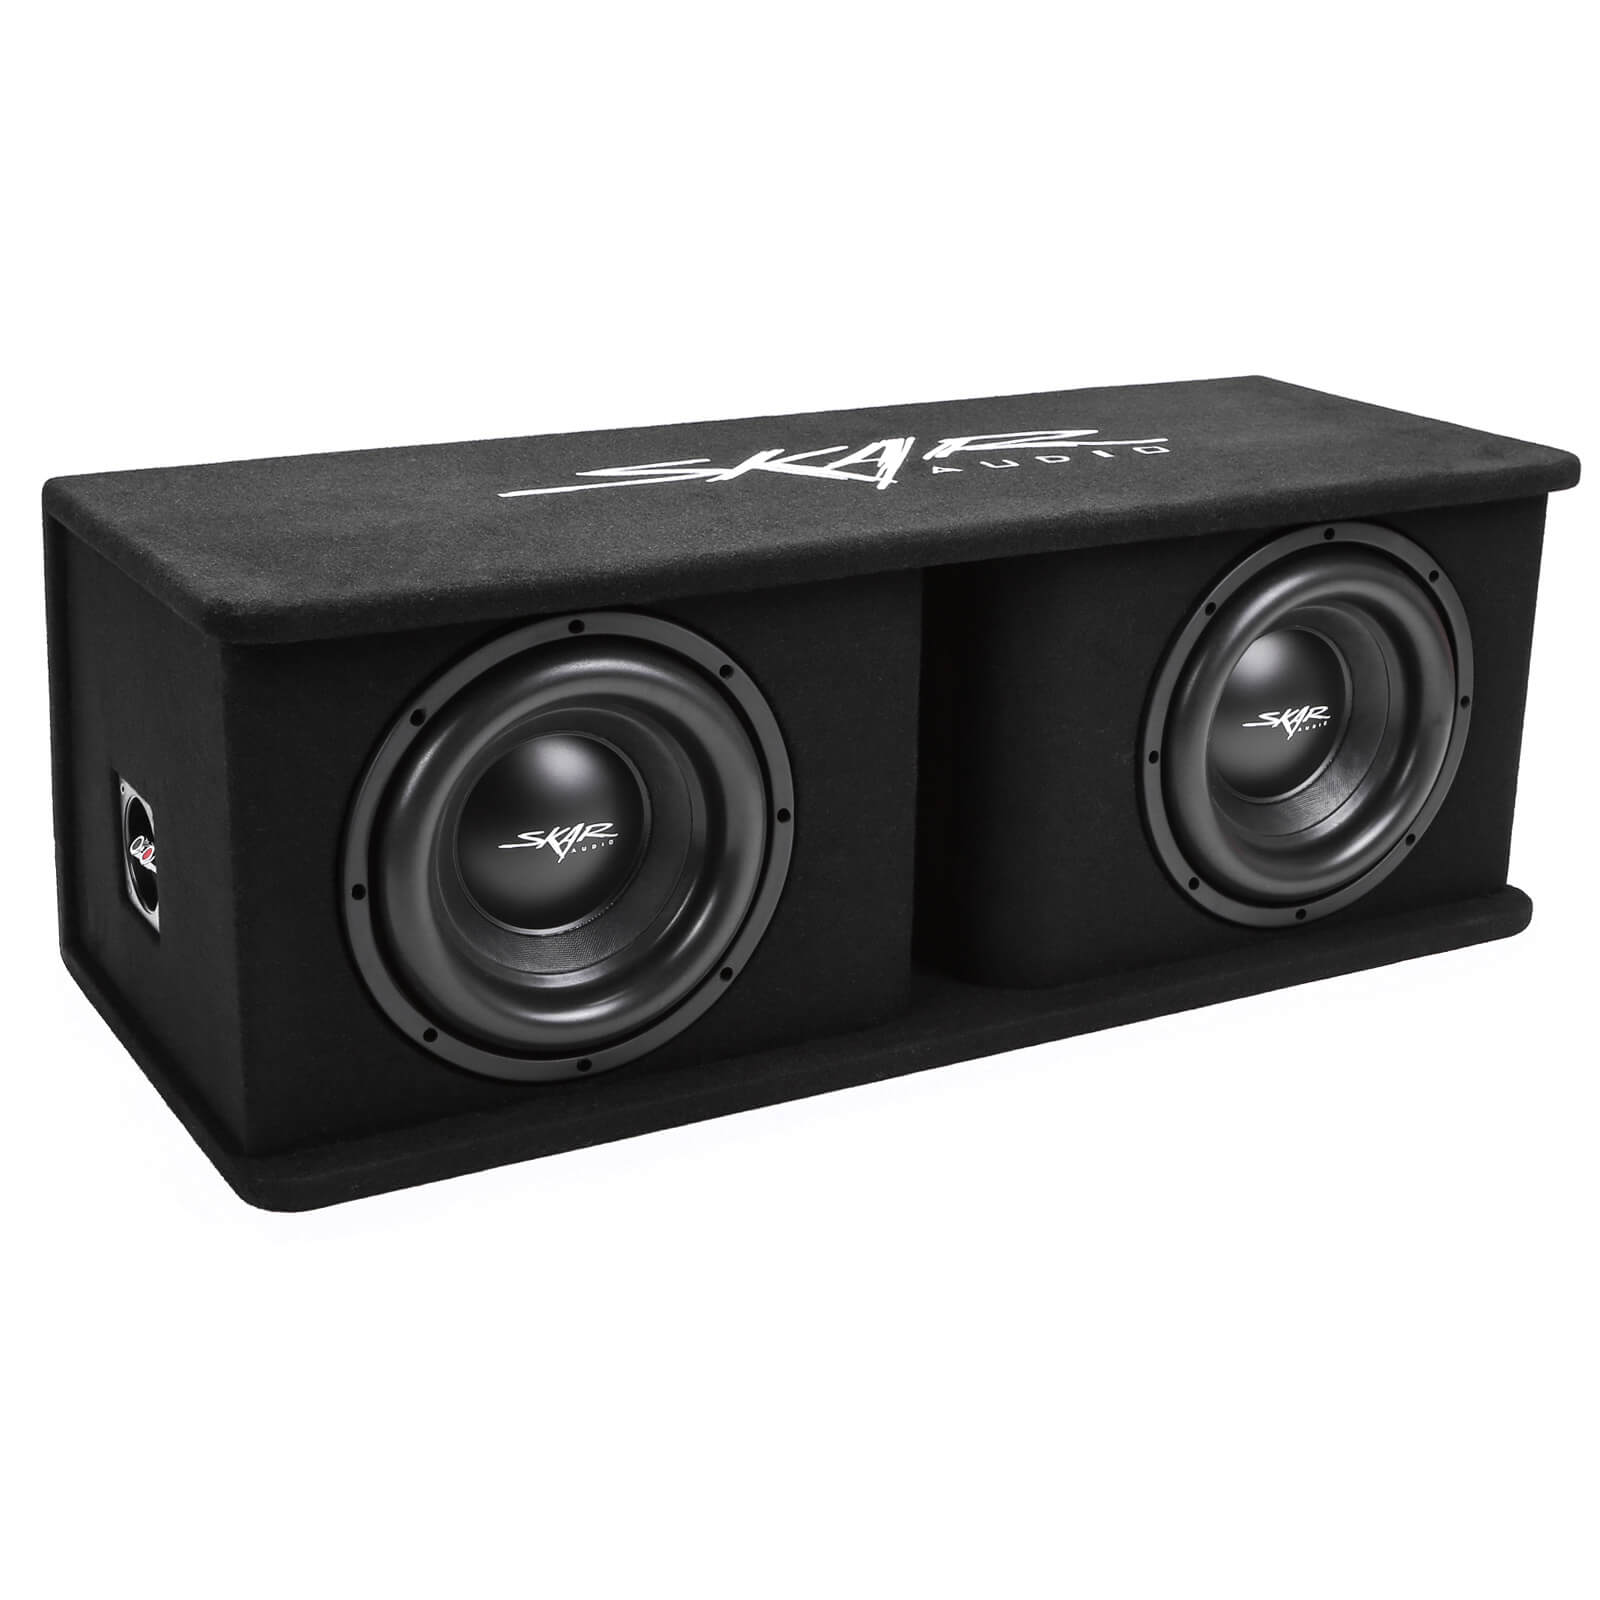 "Skar Audio SDR-2X10D4 Dual 10"" SDR Loaded Vented Subwoofer Enclosure - Angle View"